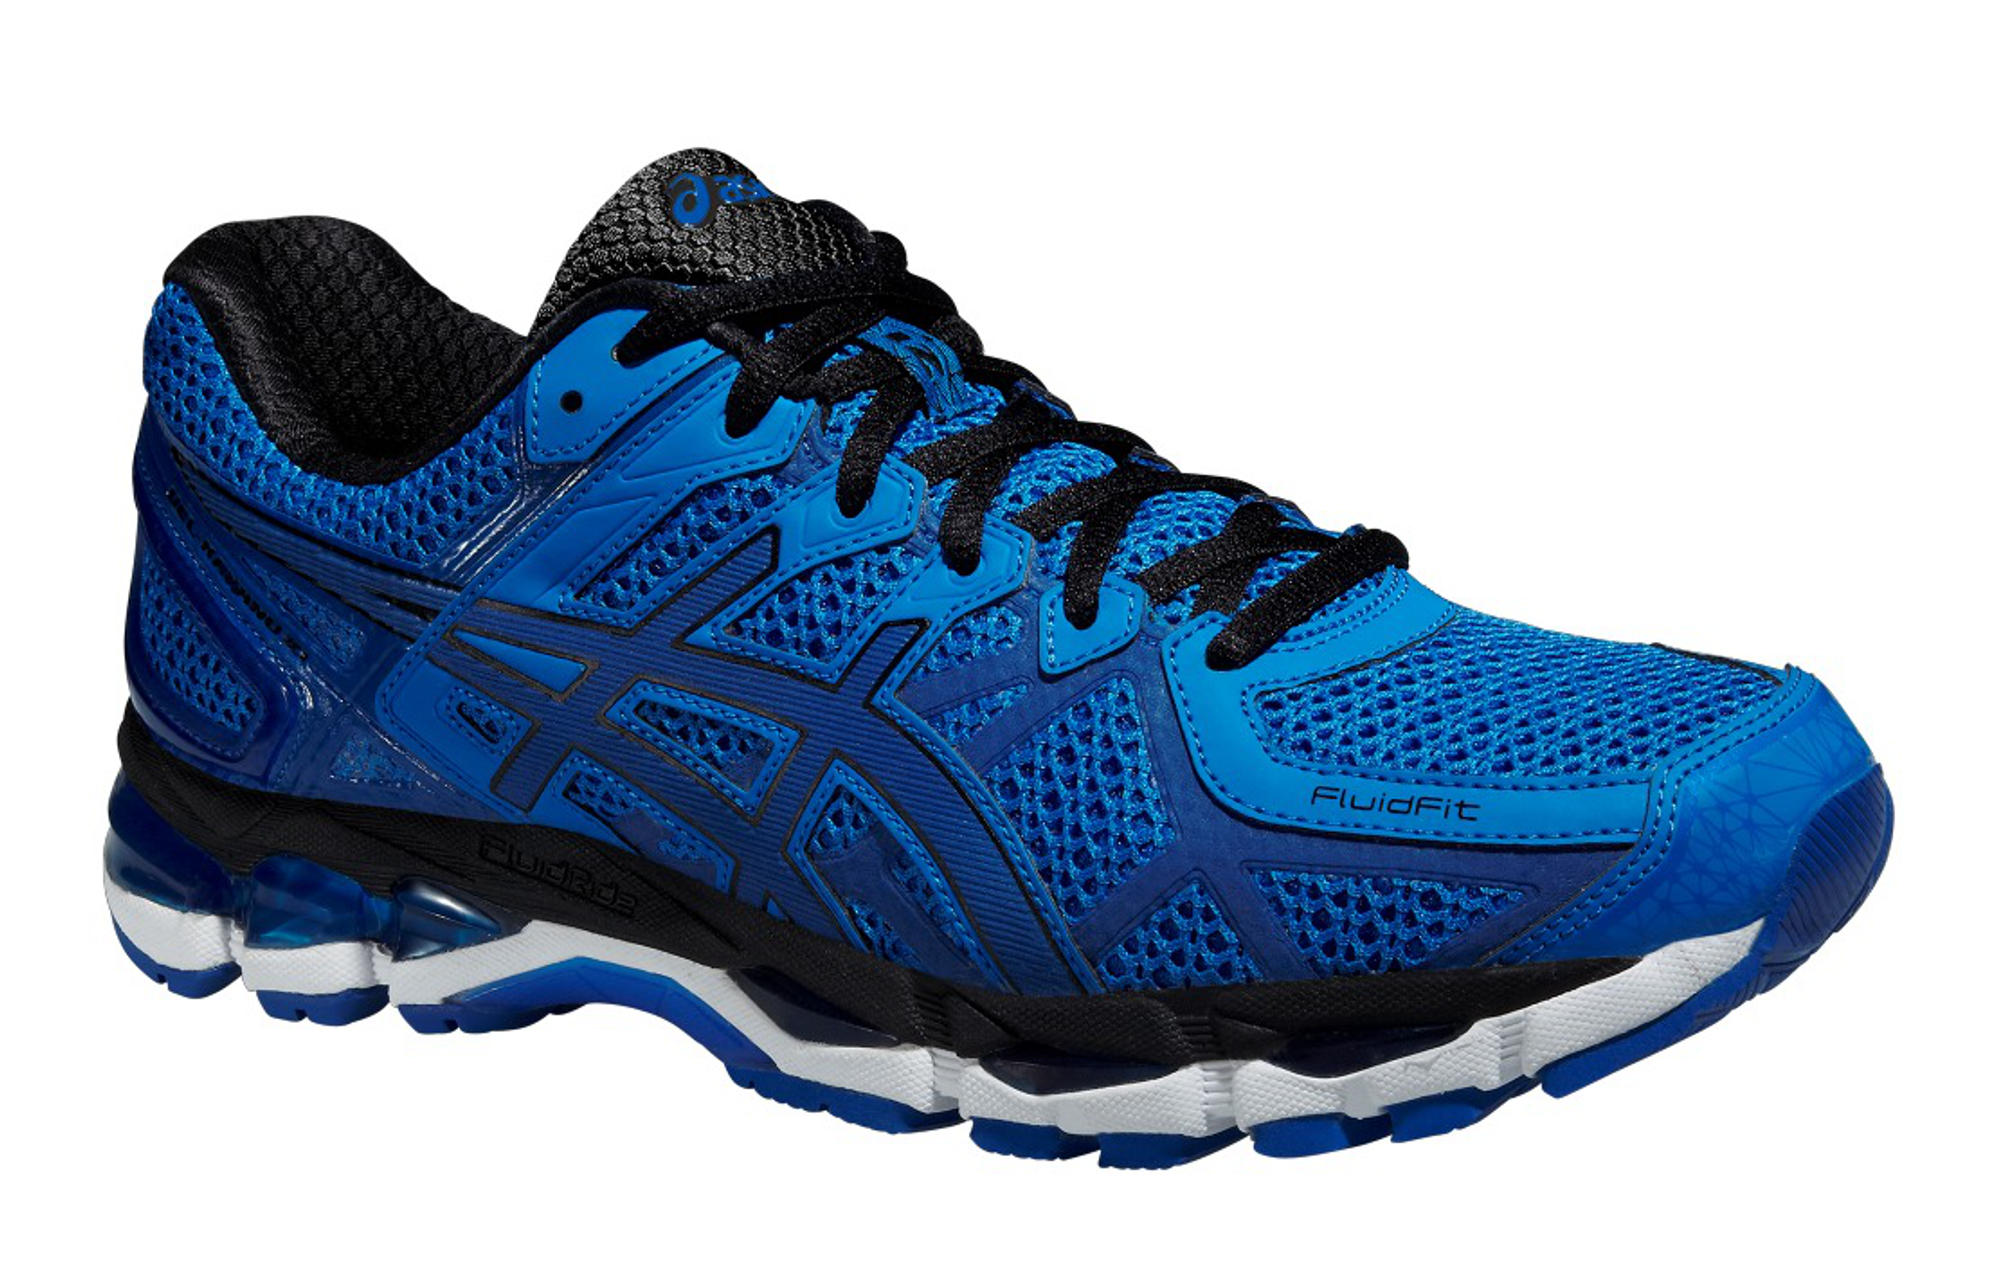 zapatillas asics gel kayano 21 lite show hombre azul. Black Bedroom Furniture Sets. Home Design Ideas